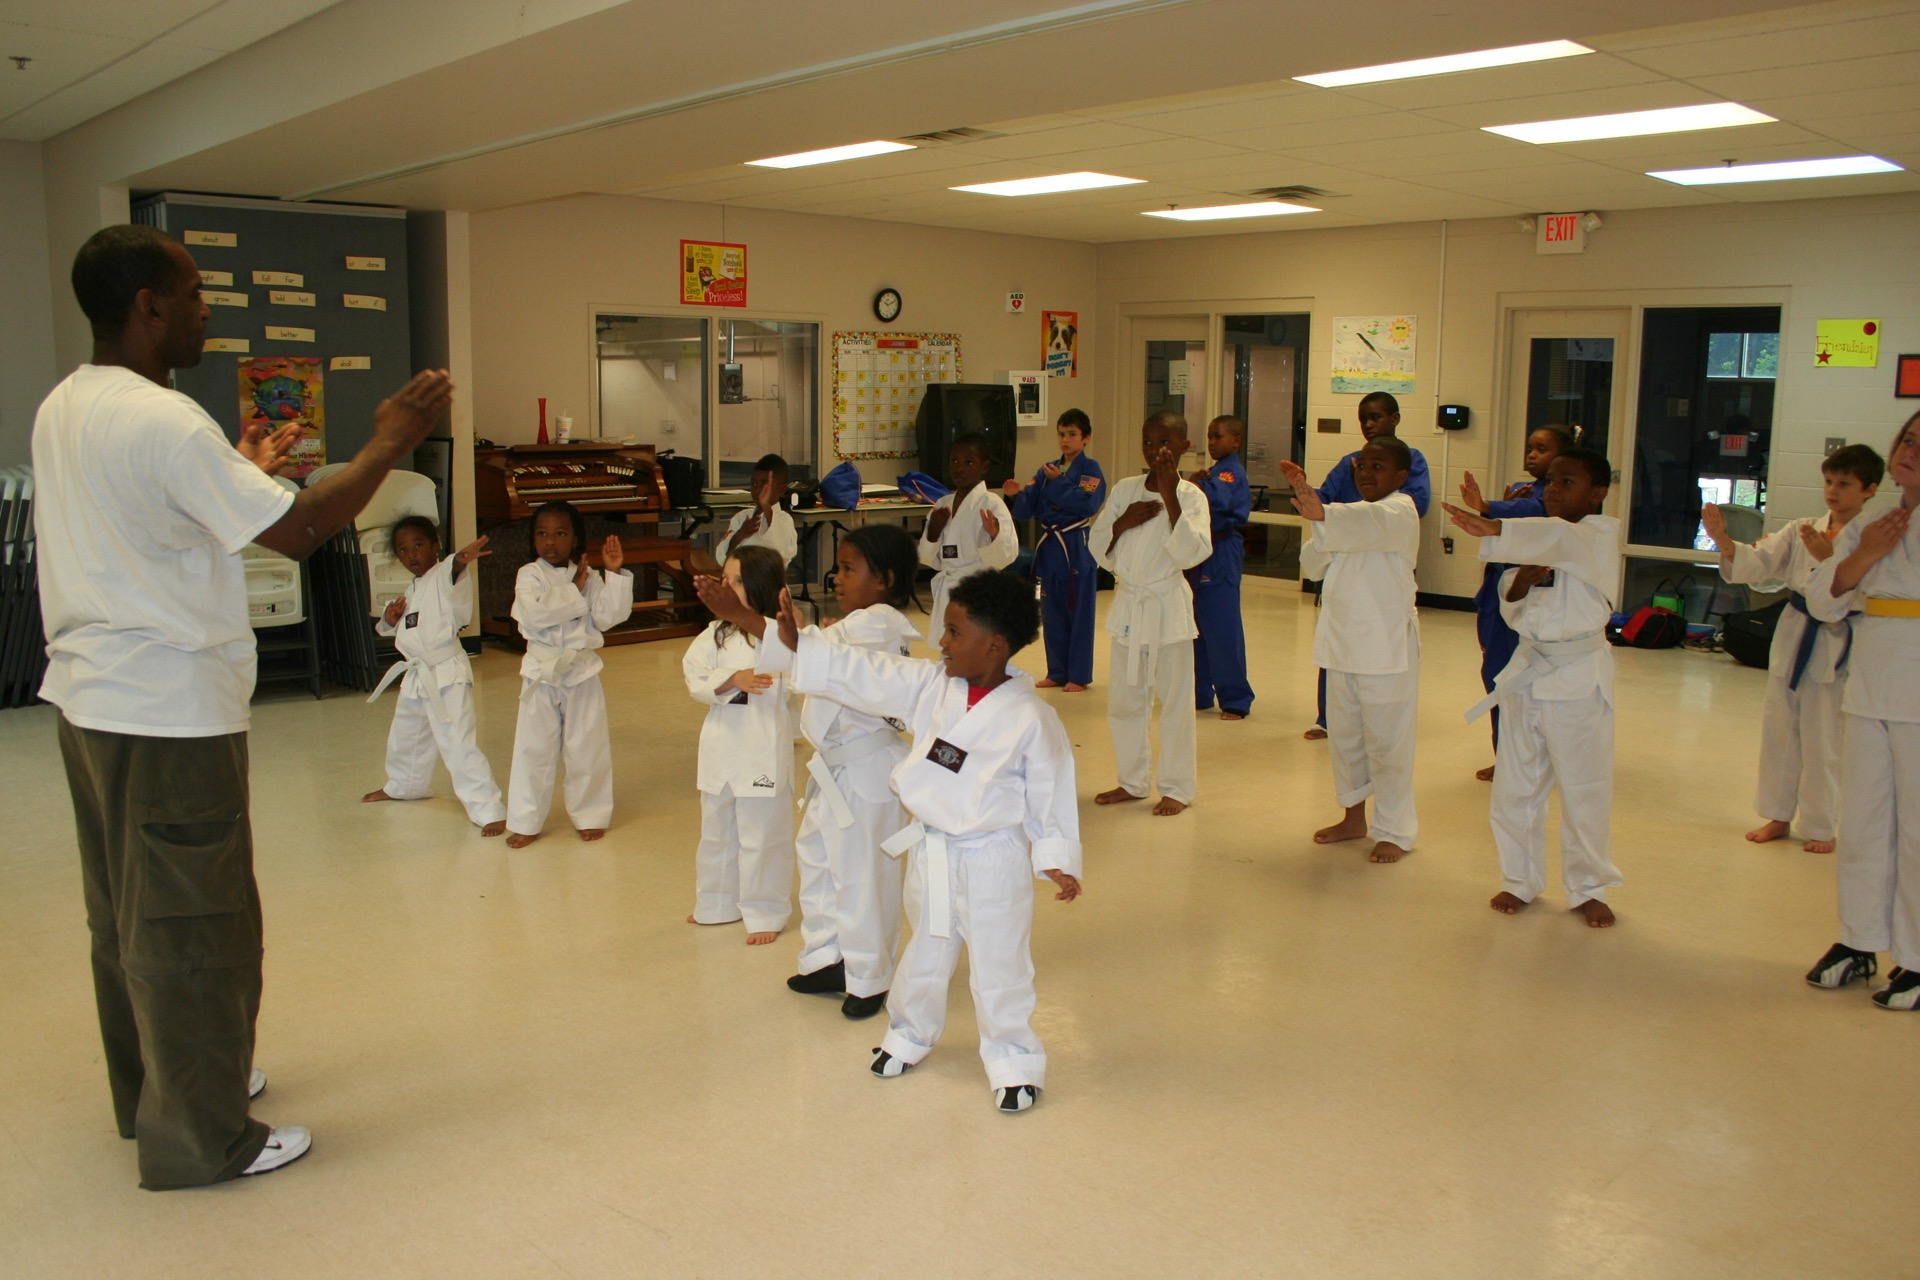 Karate Class in progress